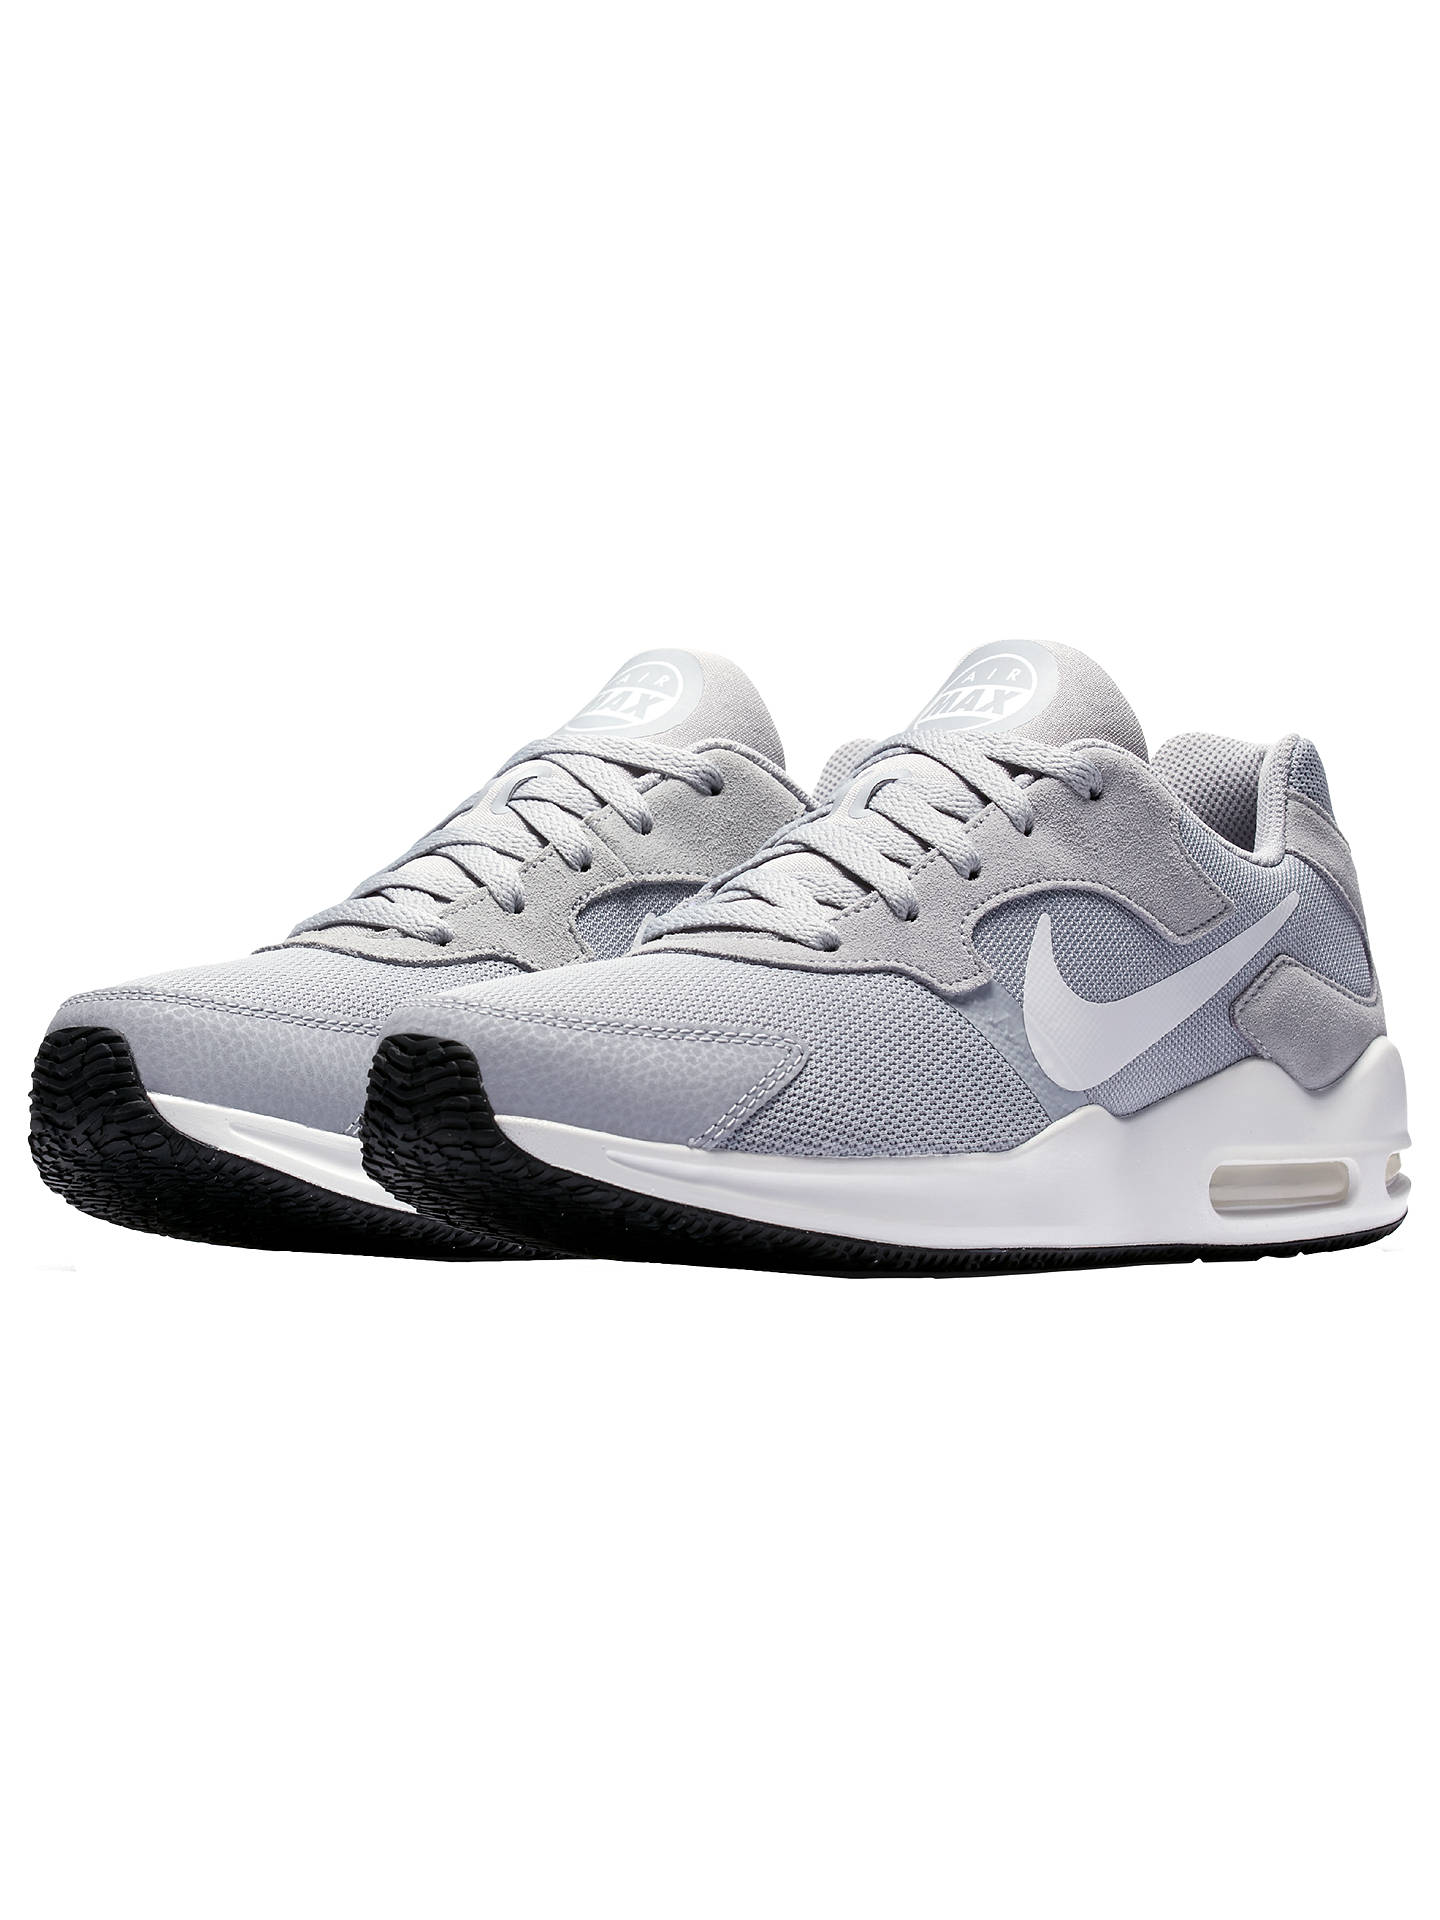 321a1fd678e8 ... BuyNike Air Max Guile Men s Trainer